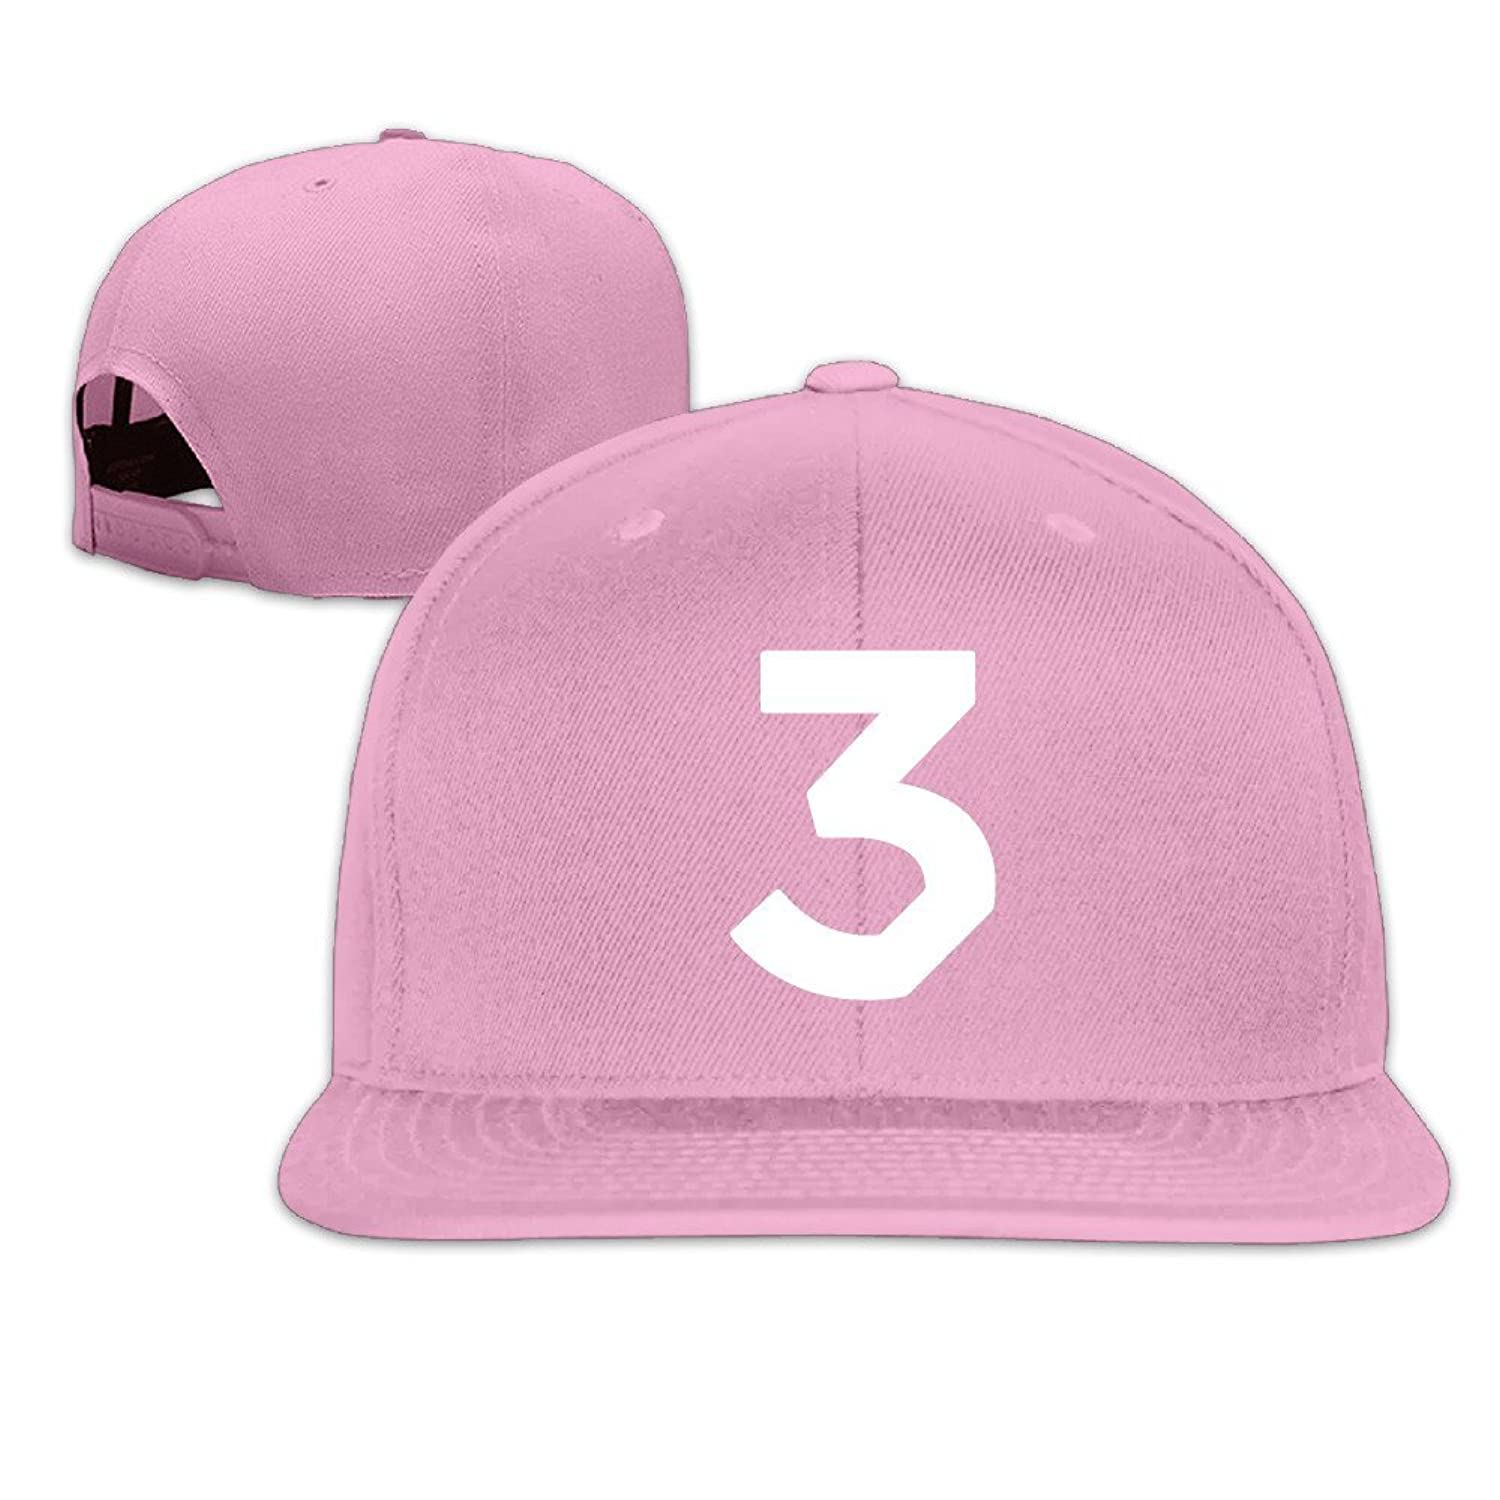 Coloring book chance the rapper hat - Amazon Com Chance The Rapper Coloring Book No 3 Six Panel Cap Pink Clothing